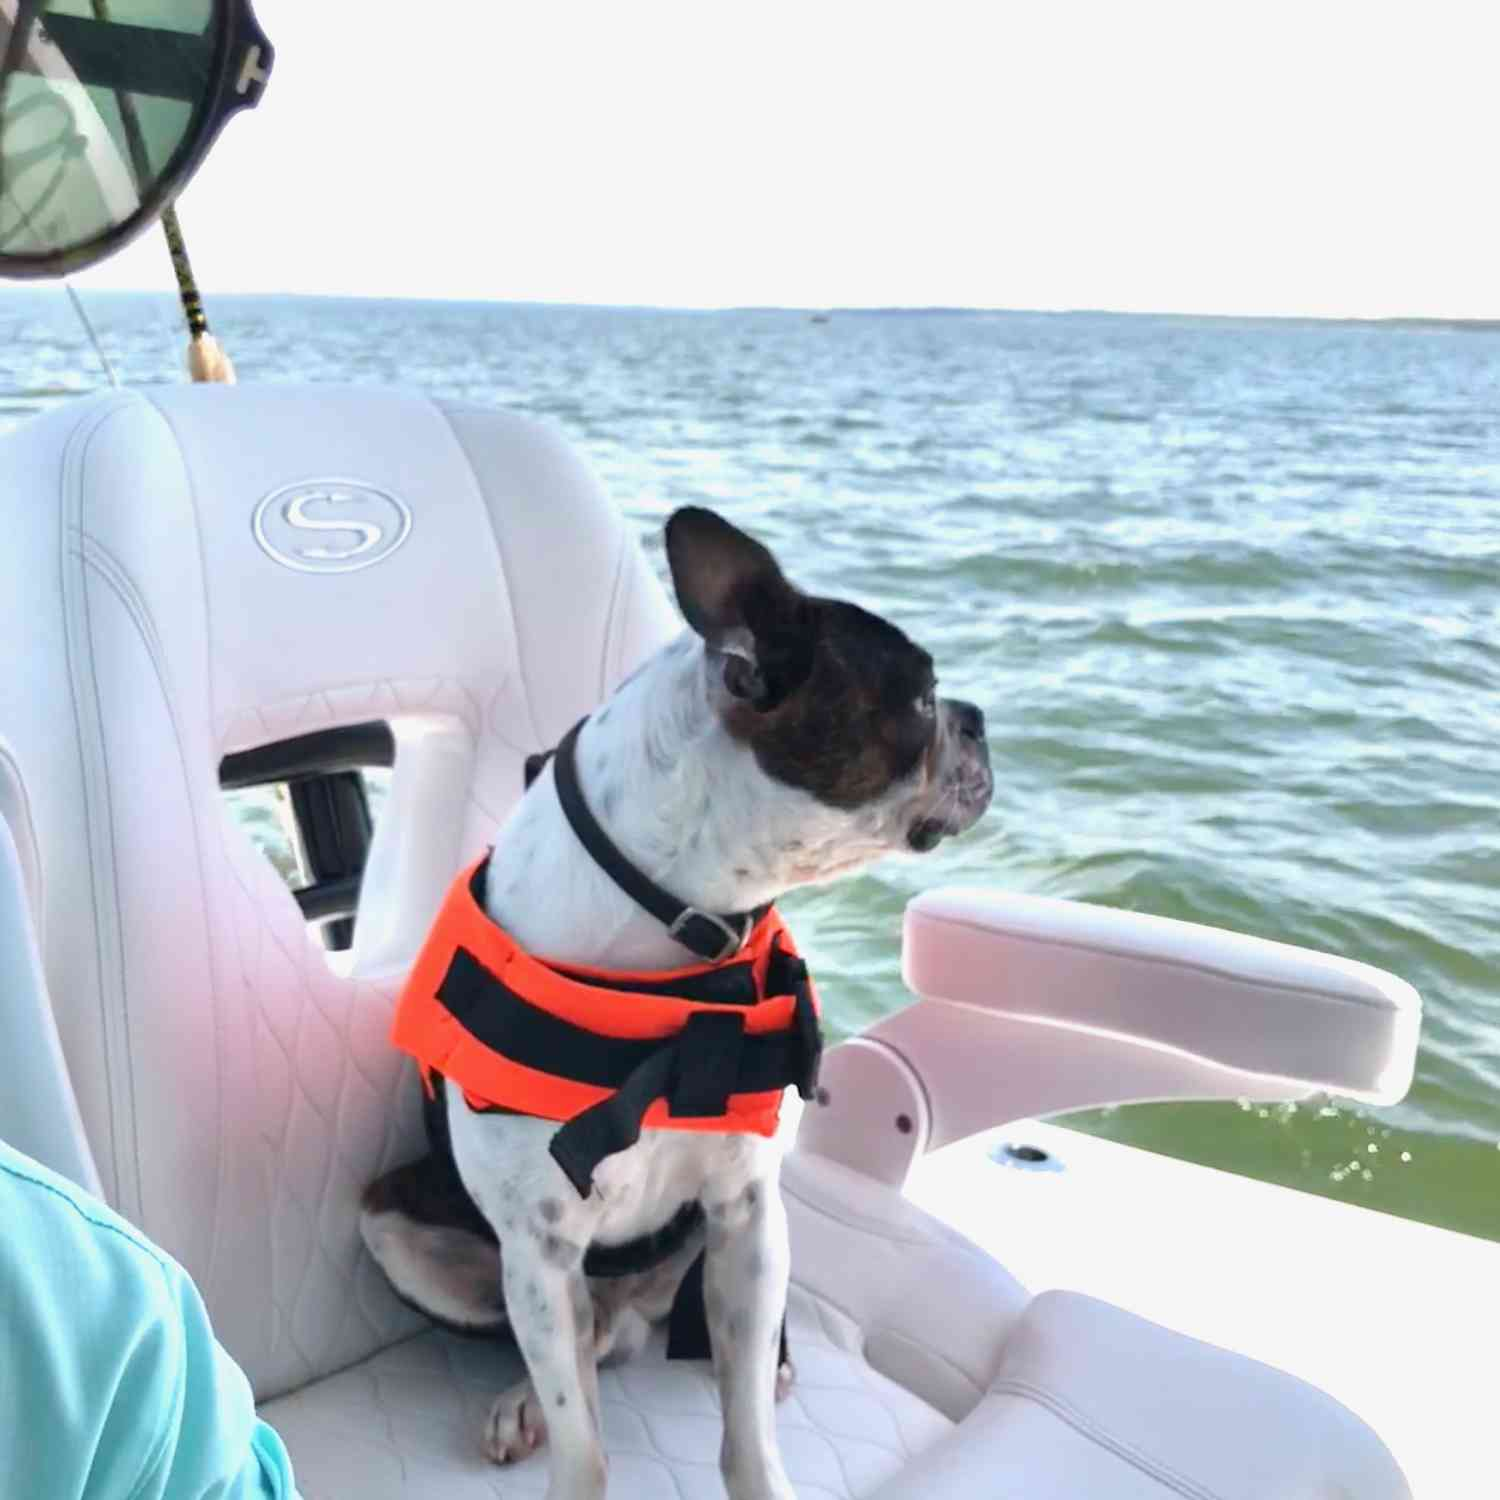 Title: Sportsman's best friend! - On board their Sportsman Open 282TE Center Console - Location: Lake Texoma, Texas. Participating in the Photo Contest #SportsmanOctober2018